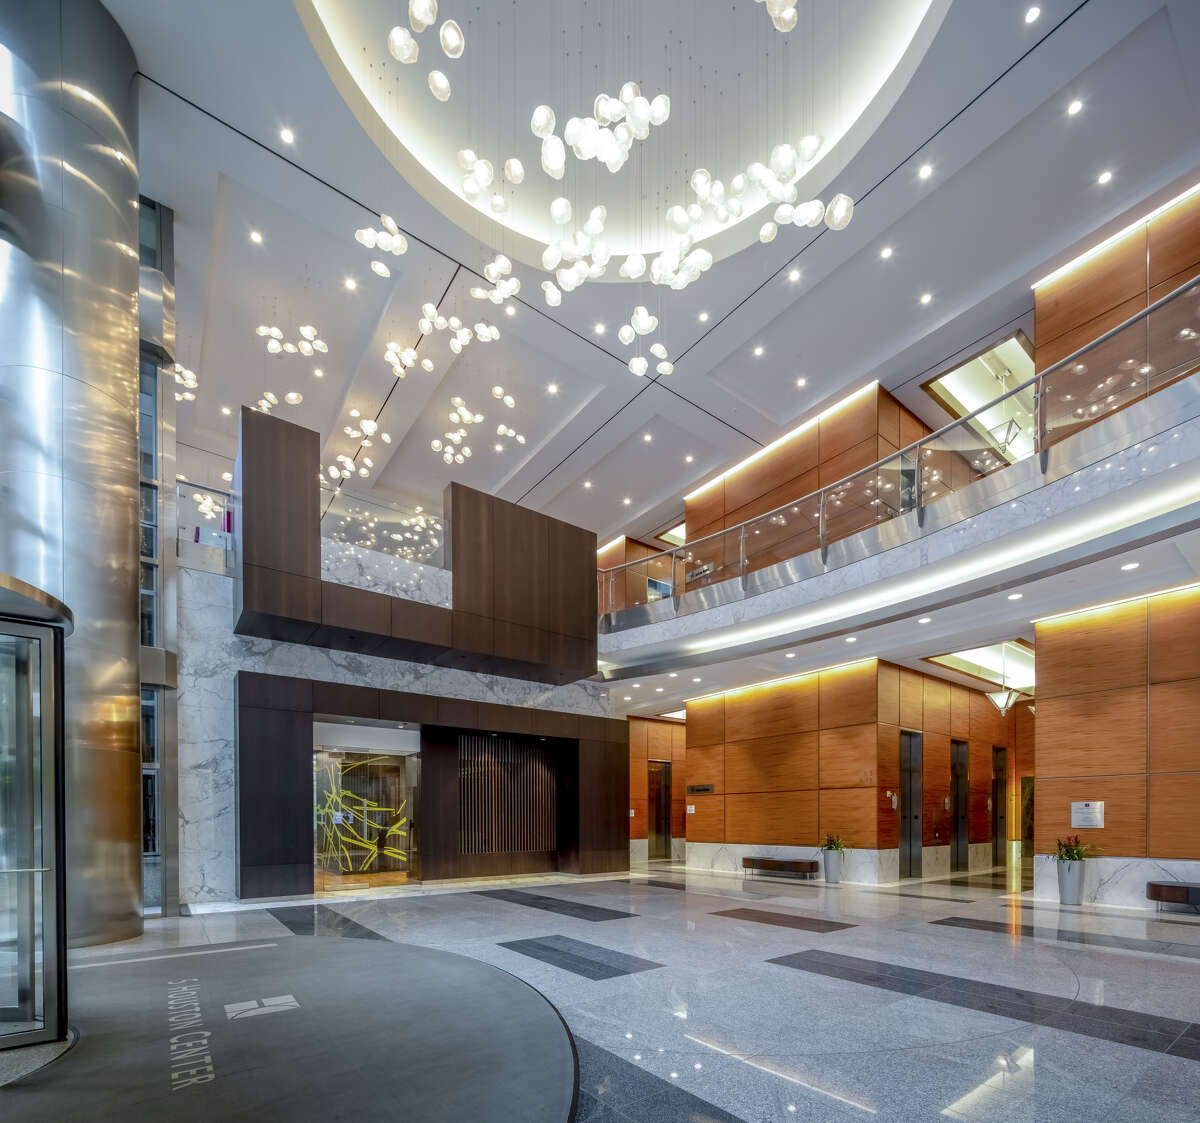 The lobby is among the renovations at Spear Street Capital's 5 Houston Center.